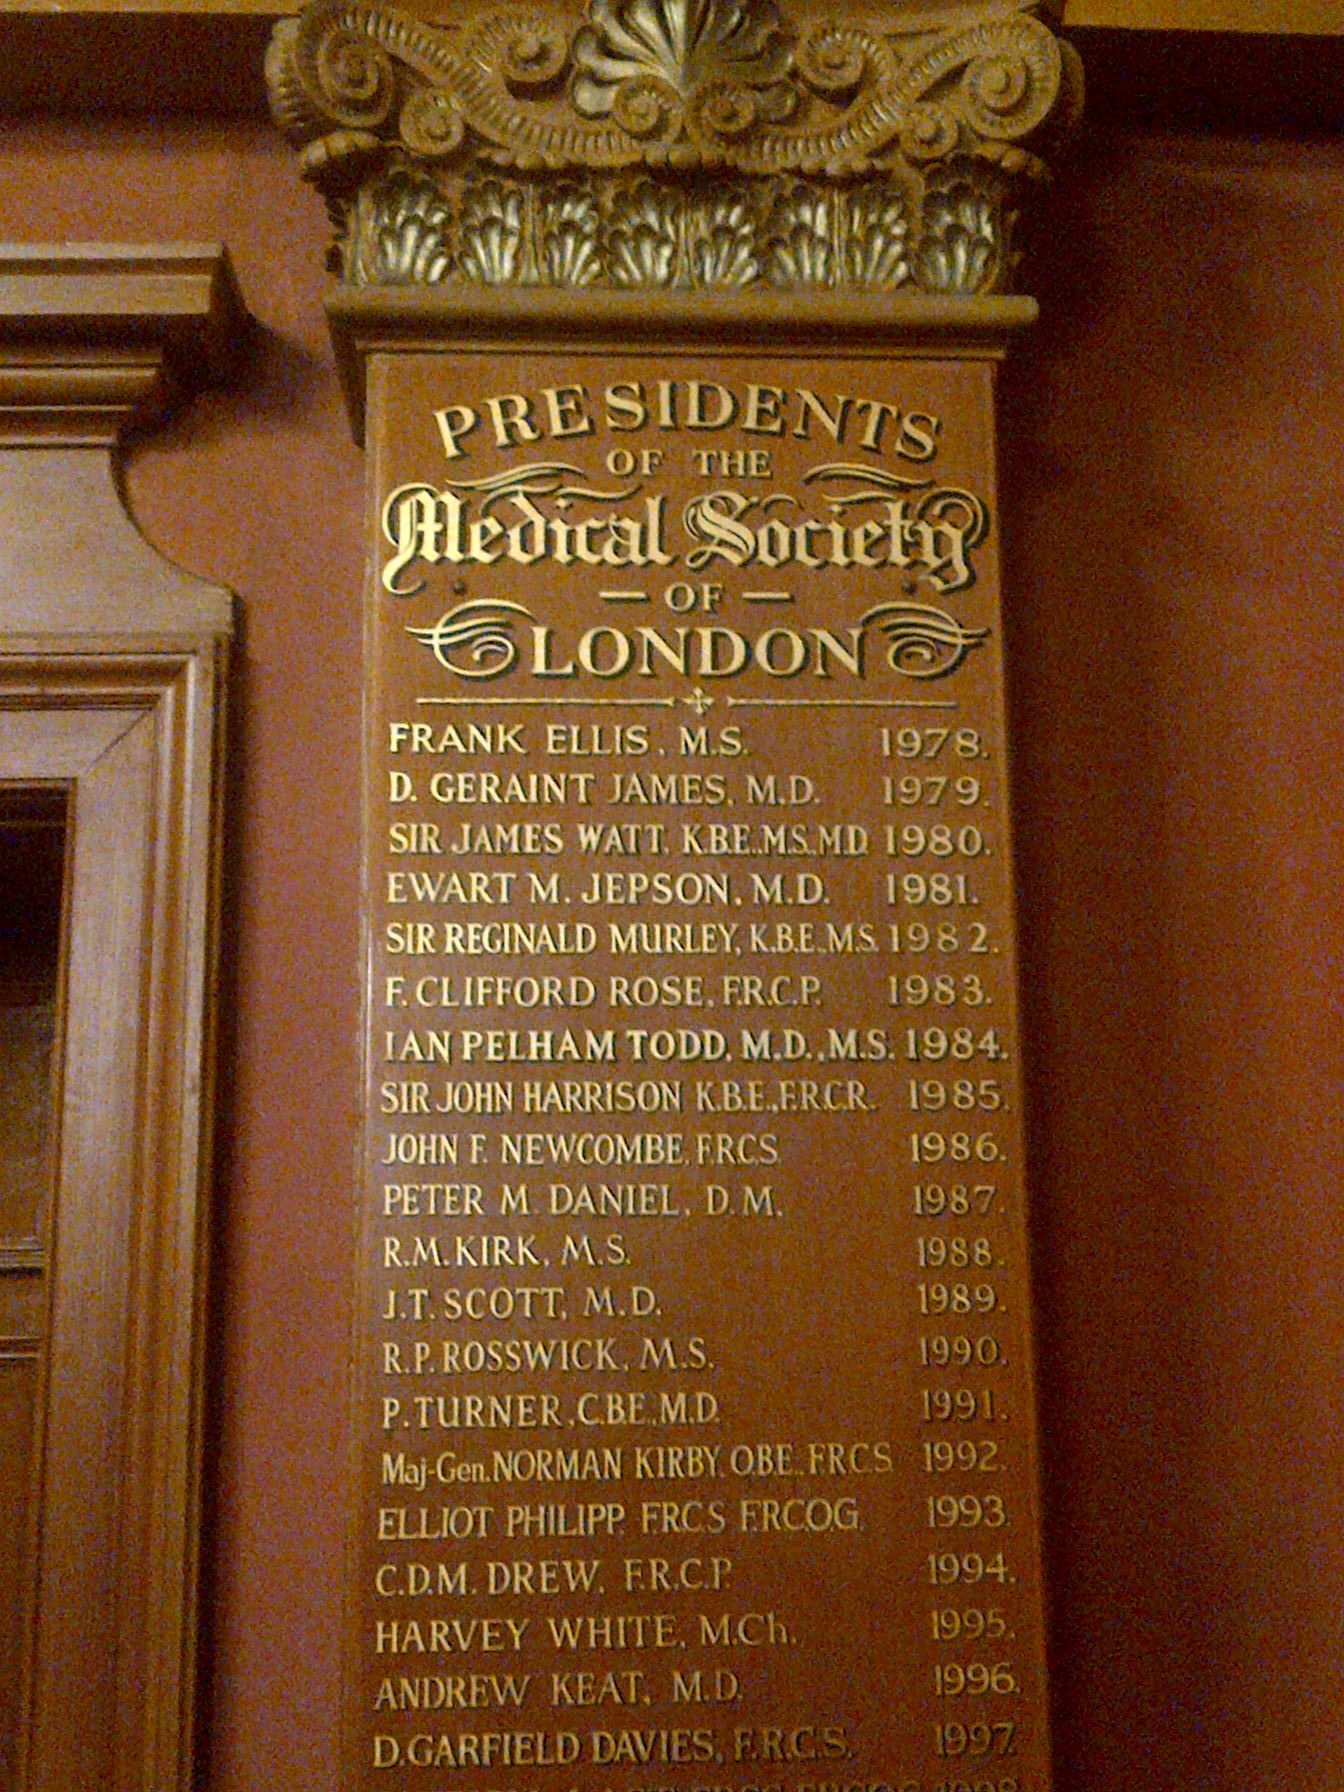 Medical Society, London 2013